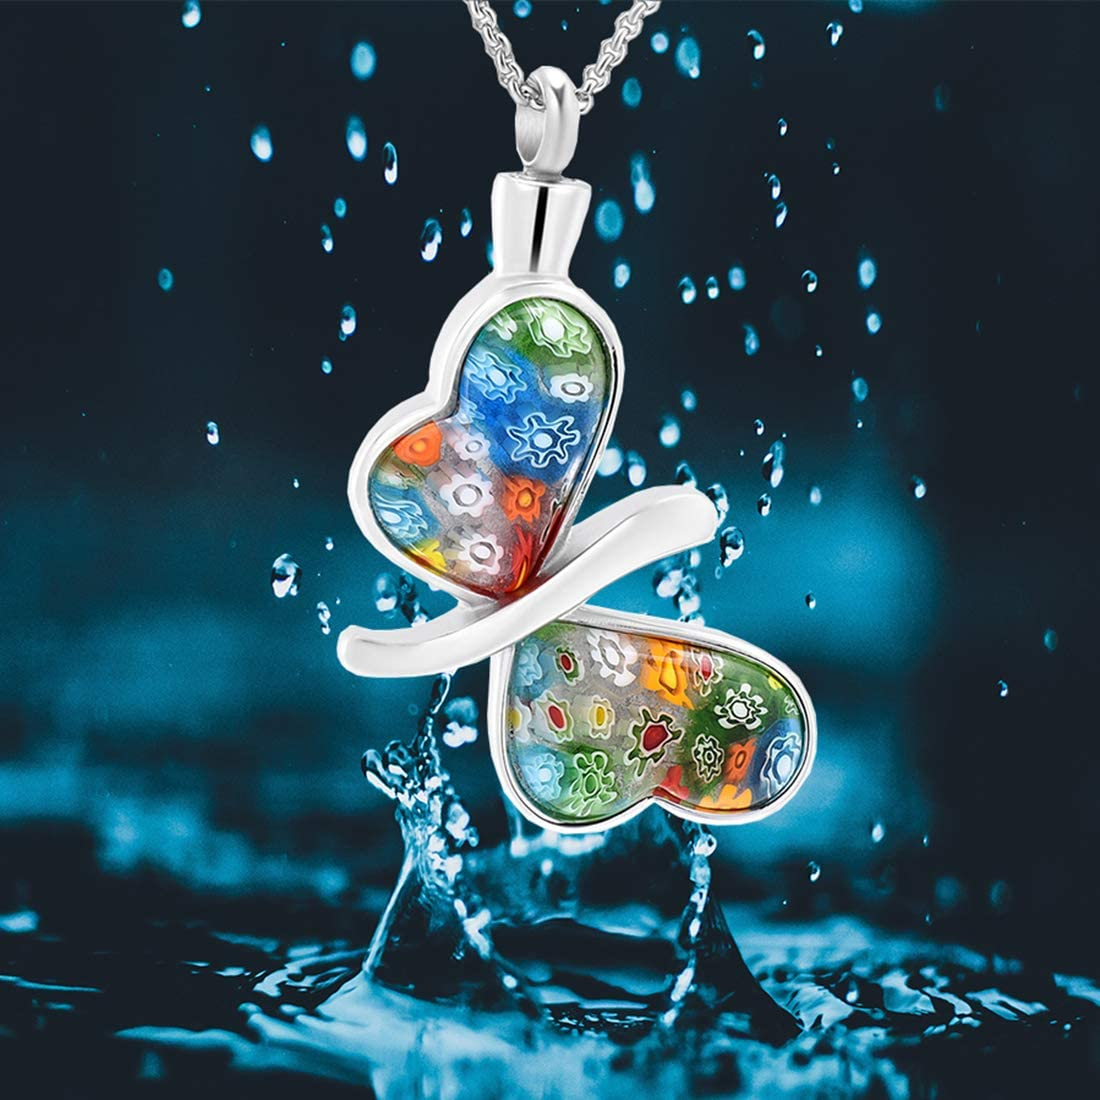 Charming Murano Glass Butterfly Cremation Urn Necklace for Ashes Hearbeingt Memorial Pendant Keepsake Jewelry Come with Filling Kit